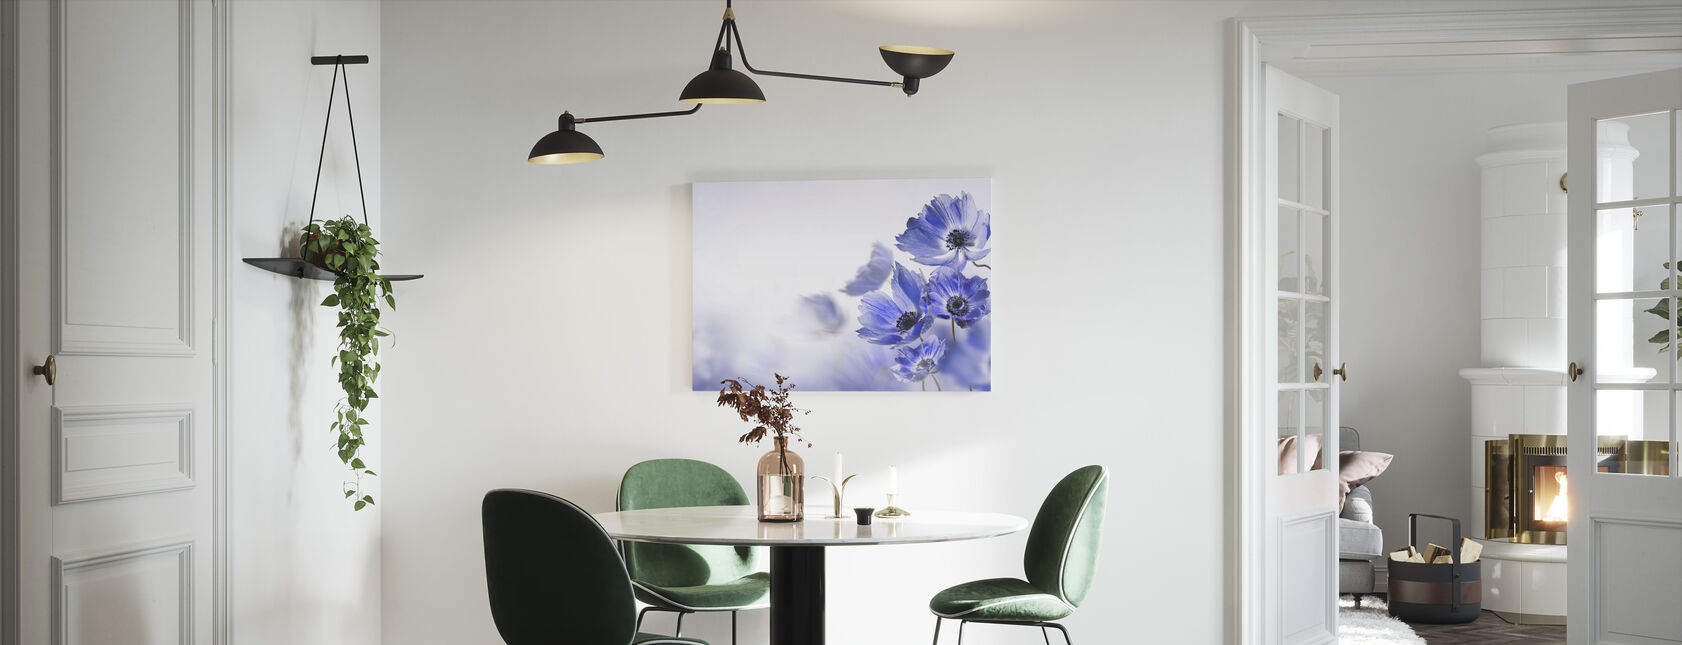 Gloaming Blue Flowers - Canvas print - Kitchen